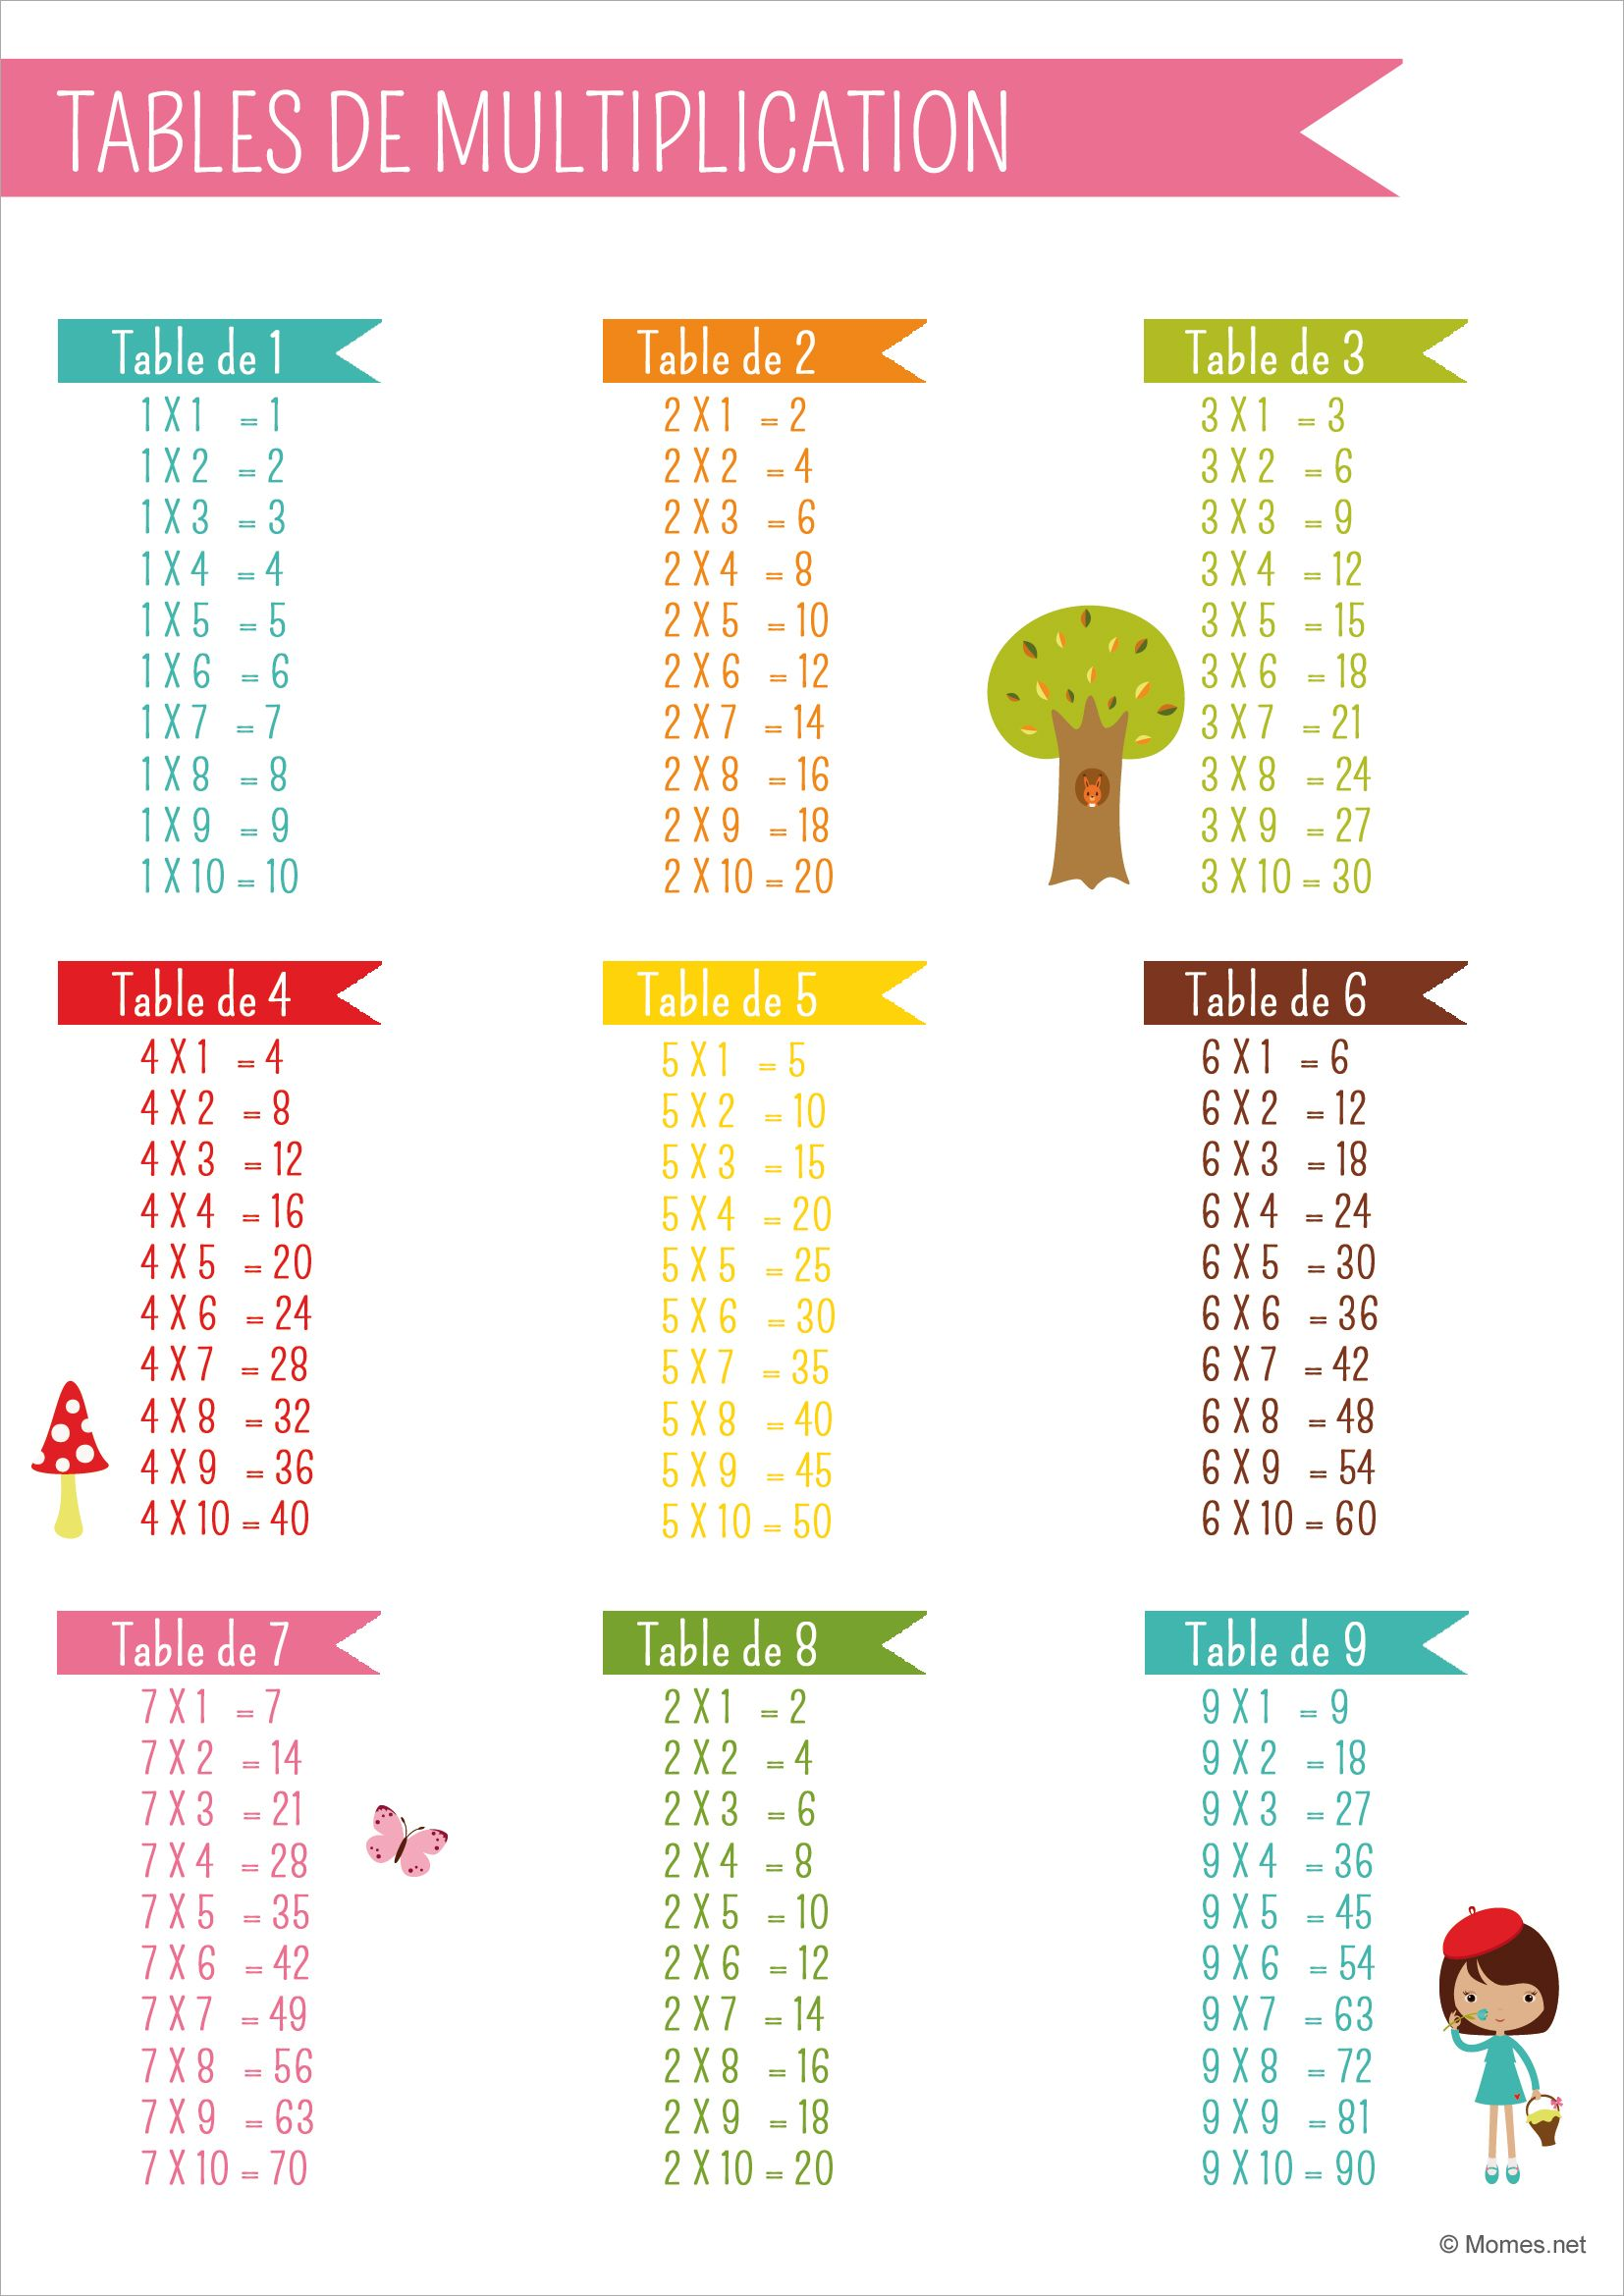 Tables De Multiplication Table De Multiplication Tableau De Multiplication Apprendre Les Tables De Multiplication